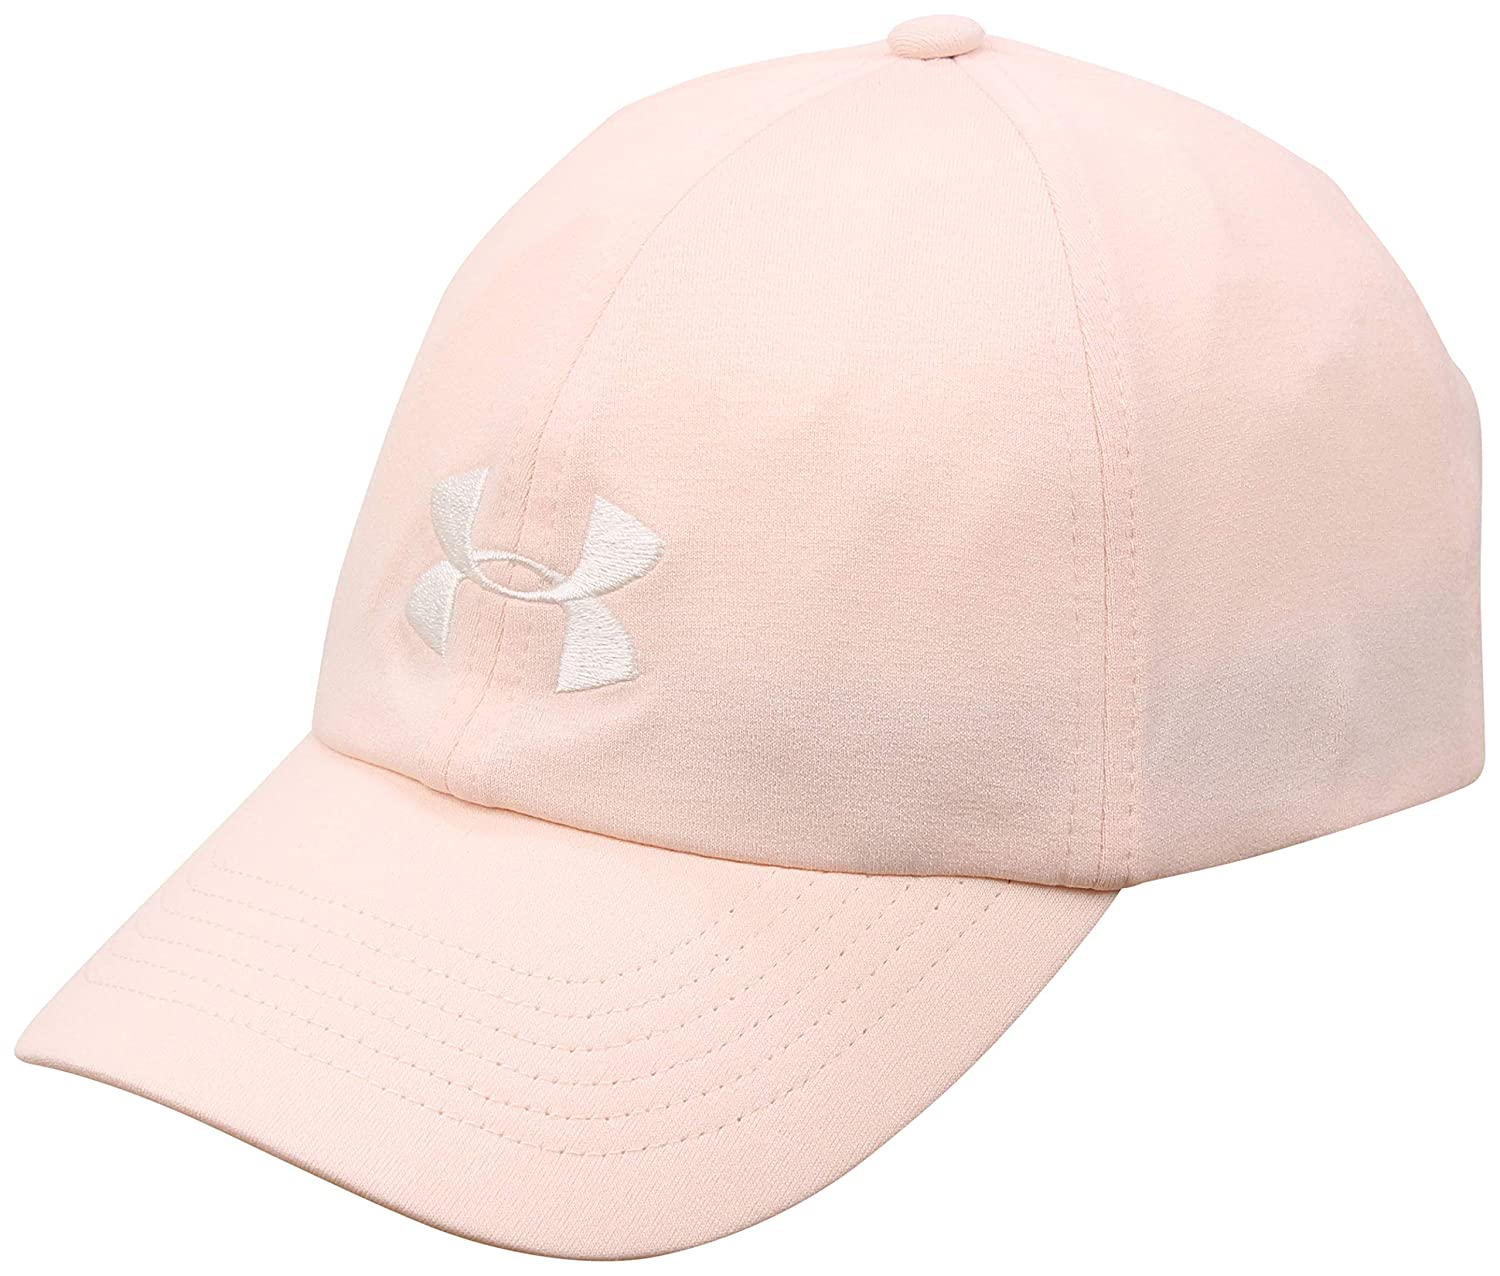 5beae9e4d6425 Under Armour Renegade Women s Hat - Orange Dream Onyx White at Amazon  Women s Clothing store